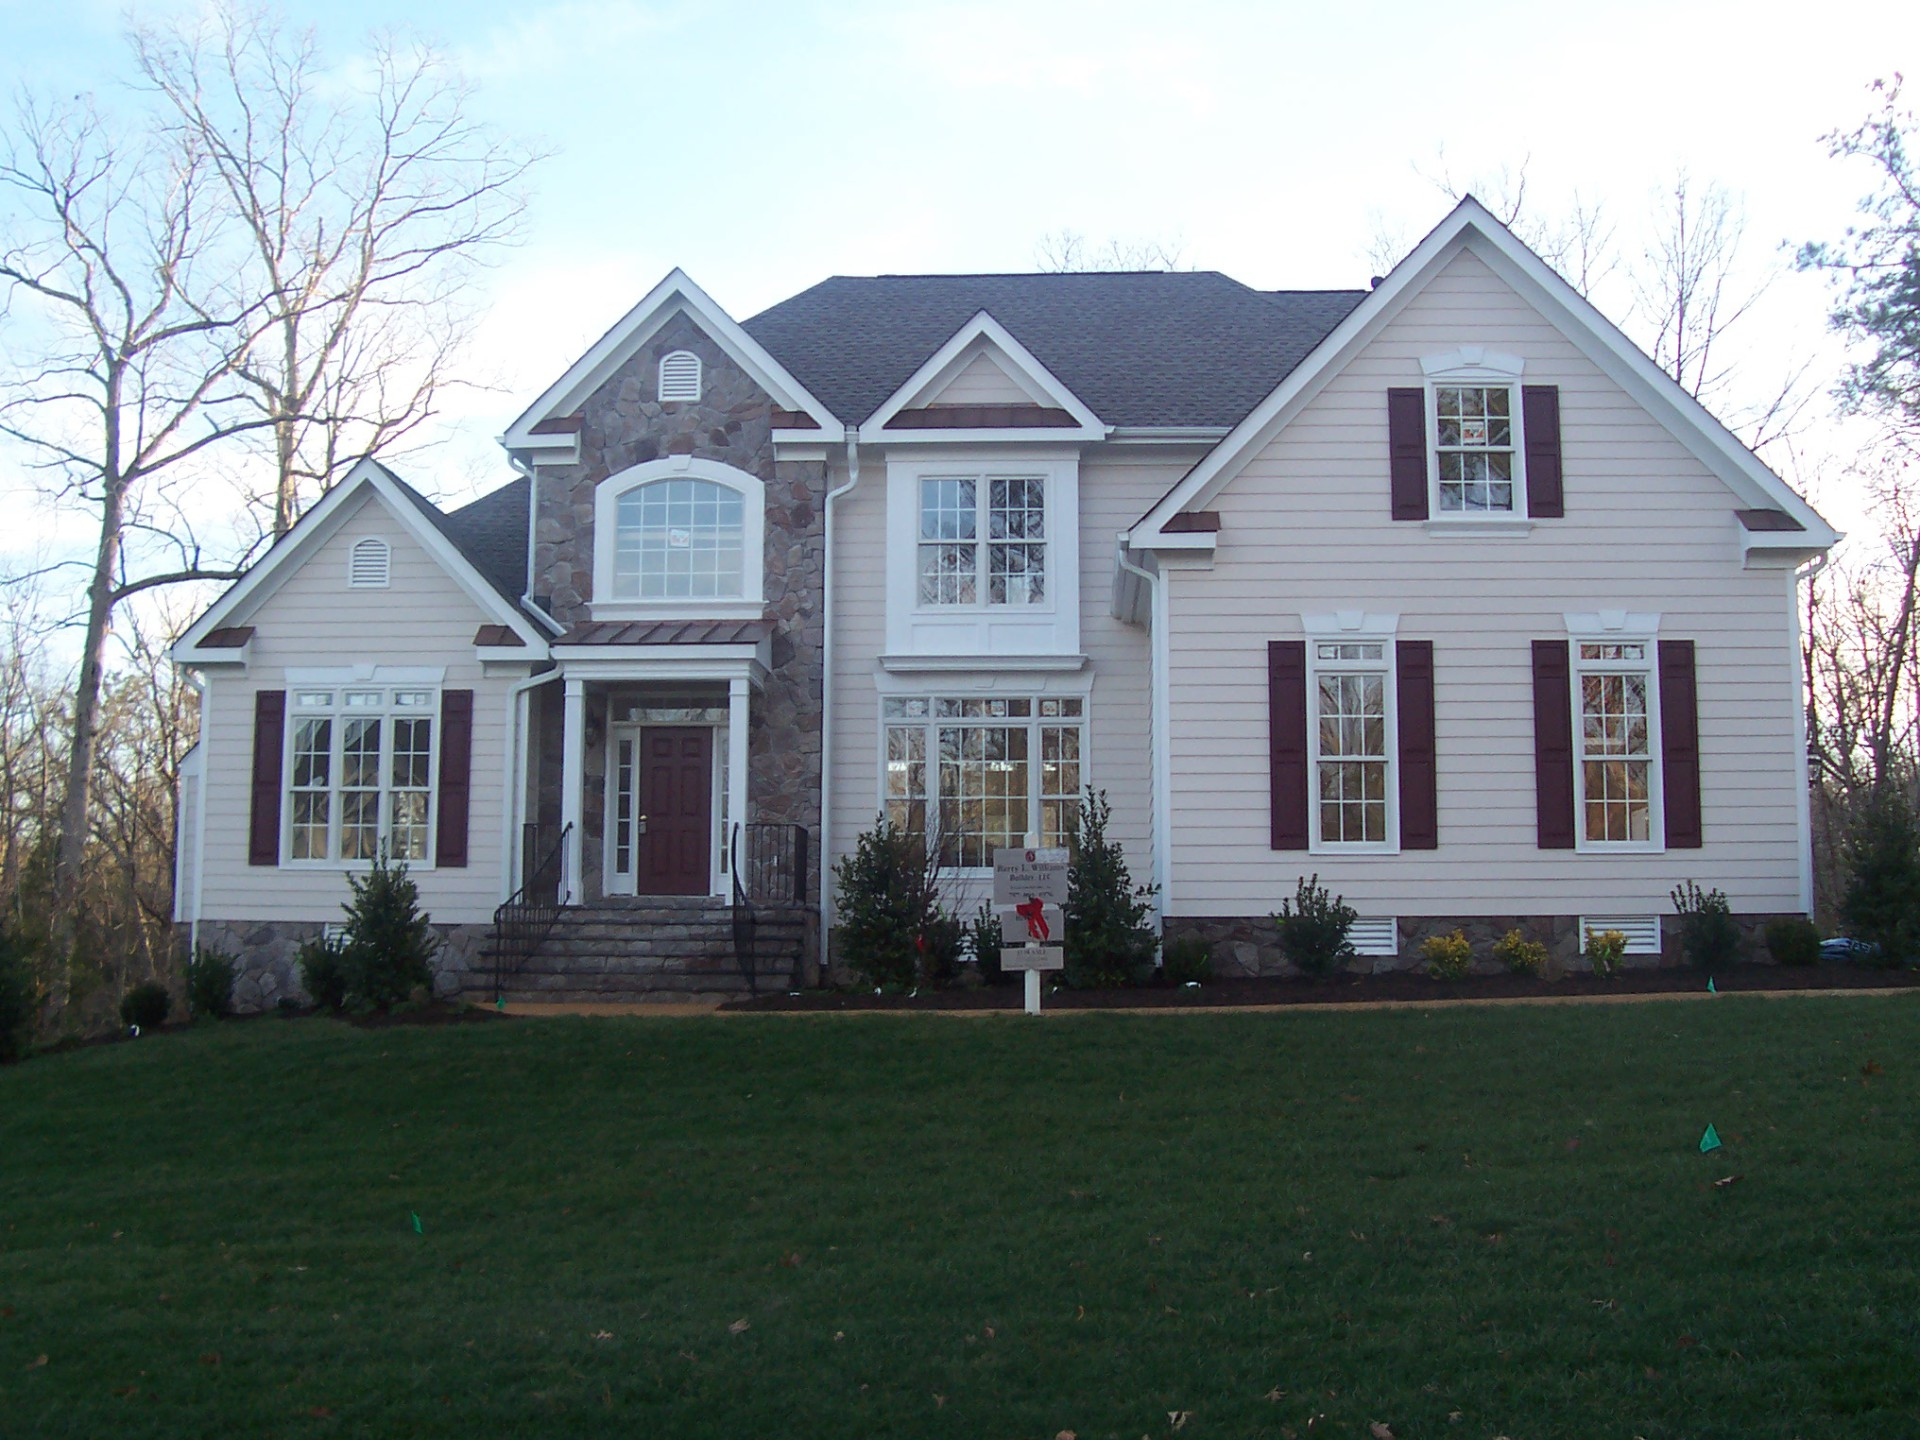 Williamsburg, Poquoson, Hampton Roads, Virginia Builder